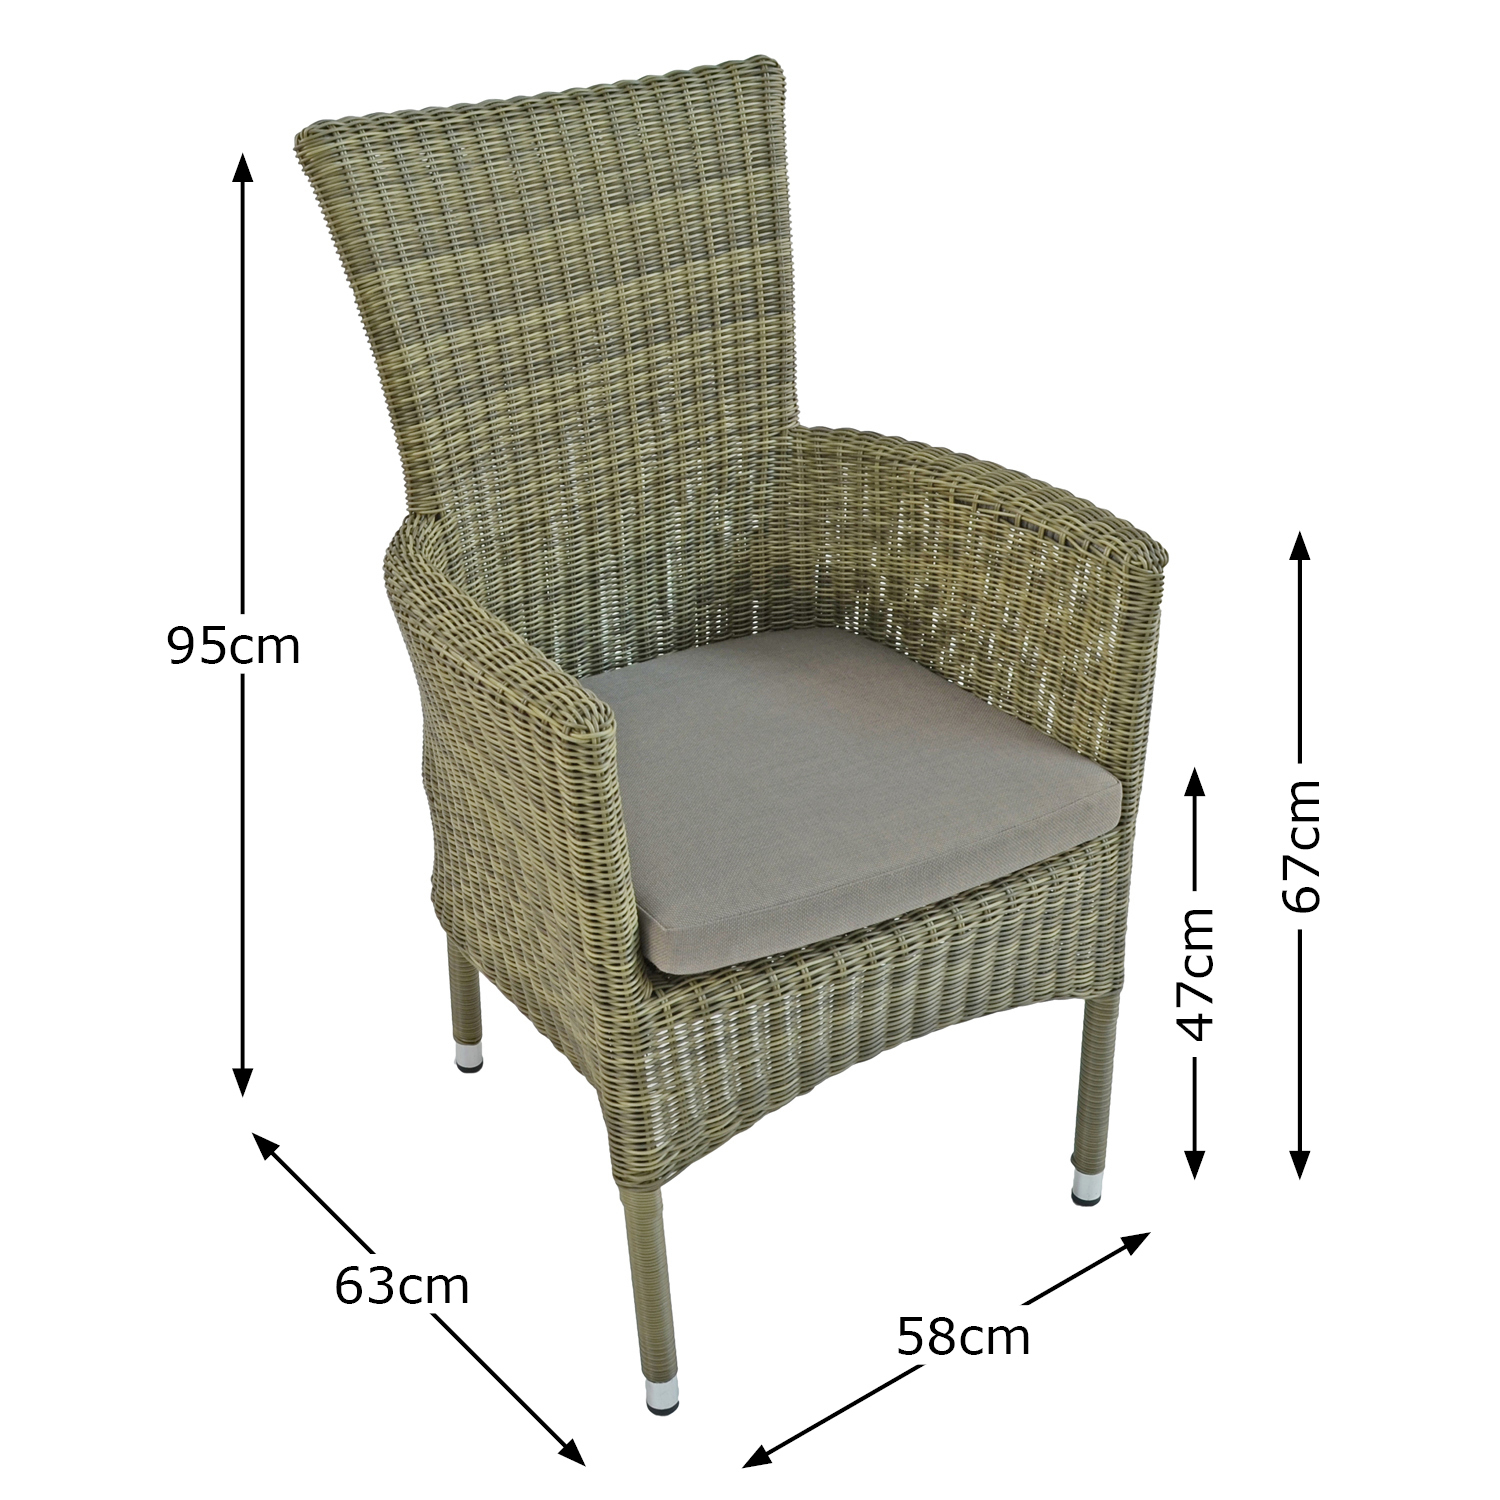 DORCHESTER CHAIR DIMENSION MS1